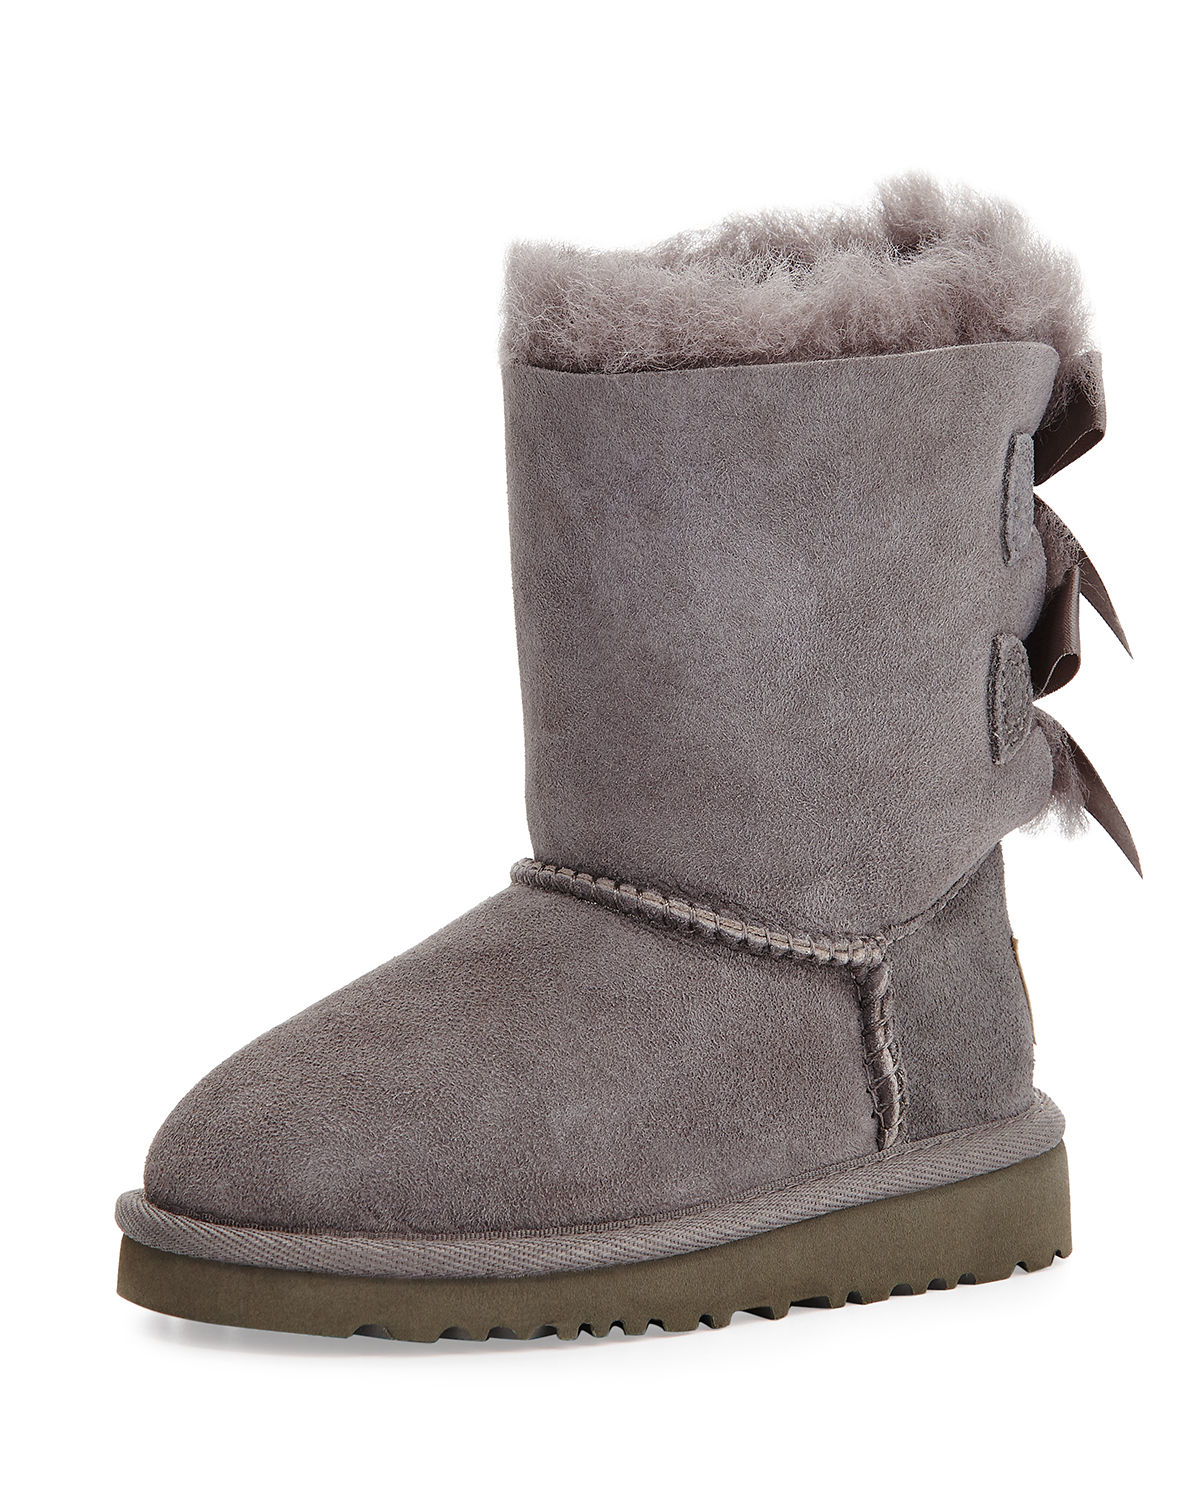 gray uggs boots on sale